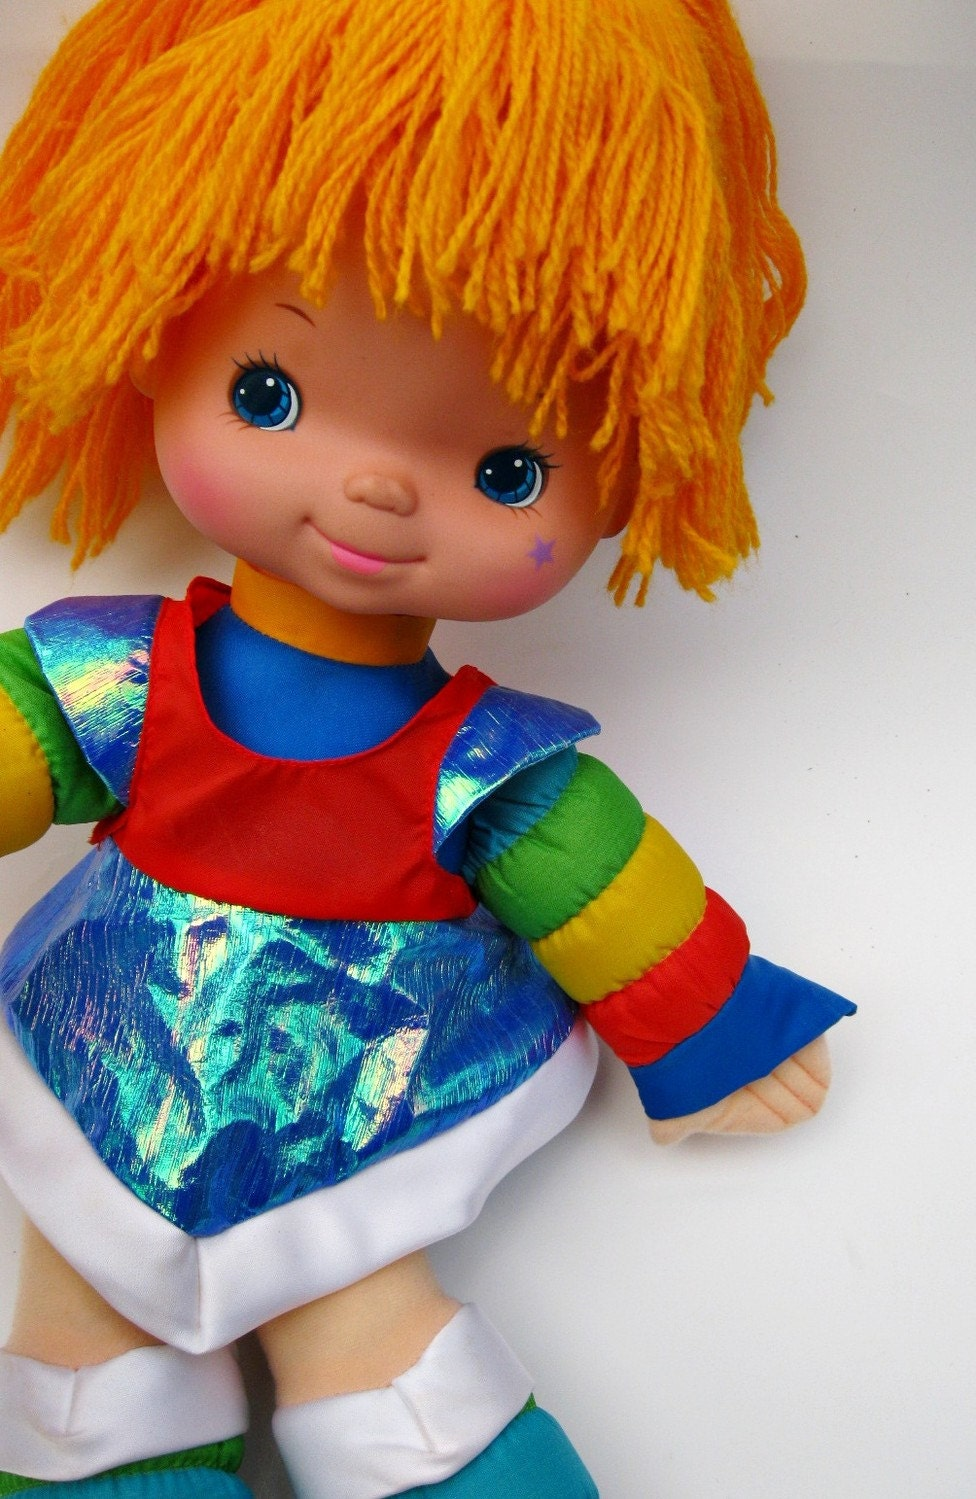 80s Toy Dolls : Images about s love on pinterest kurt cobain